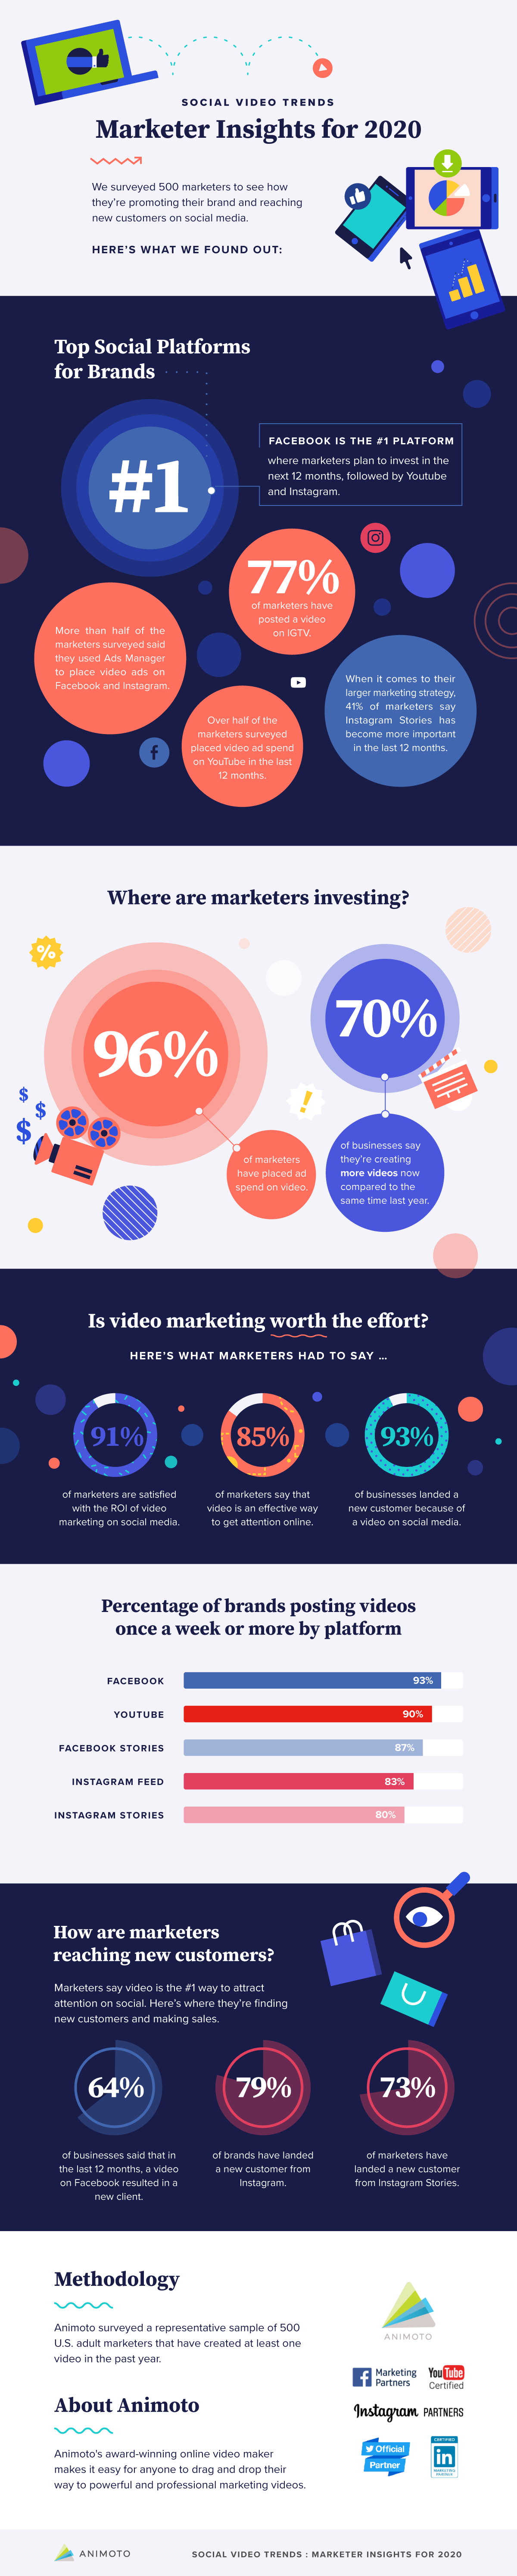 Social Video Trends Consumer And Marketer Insights For 2020